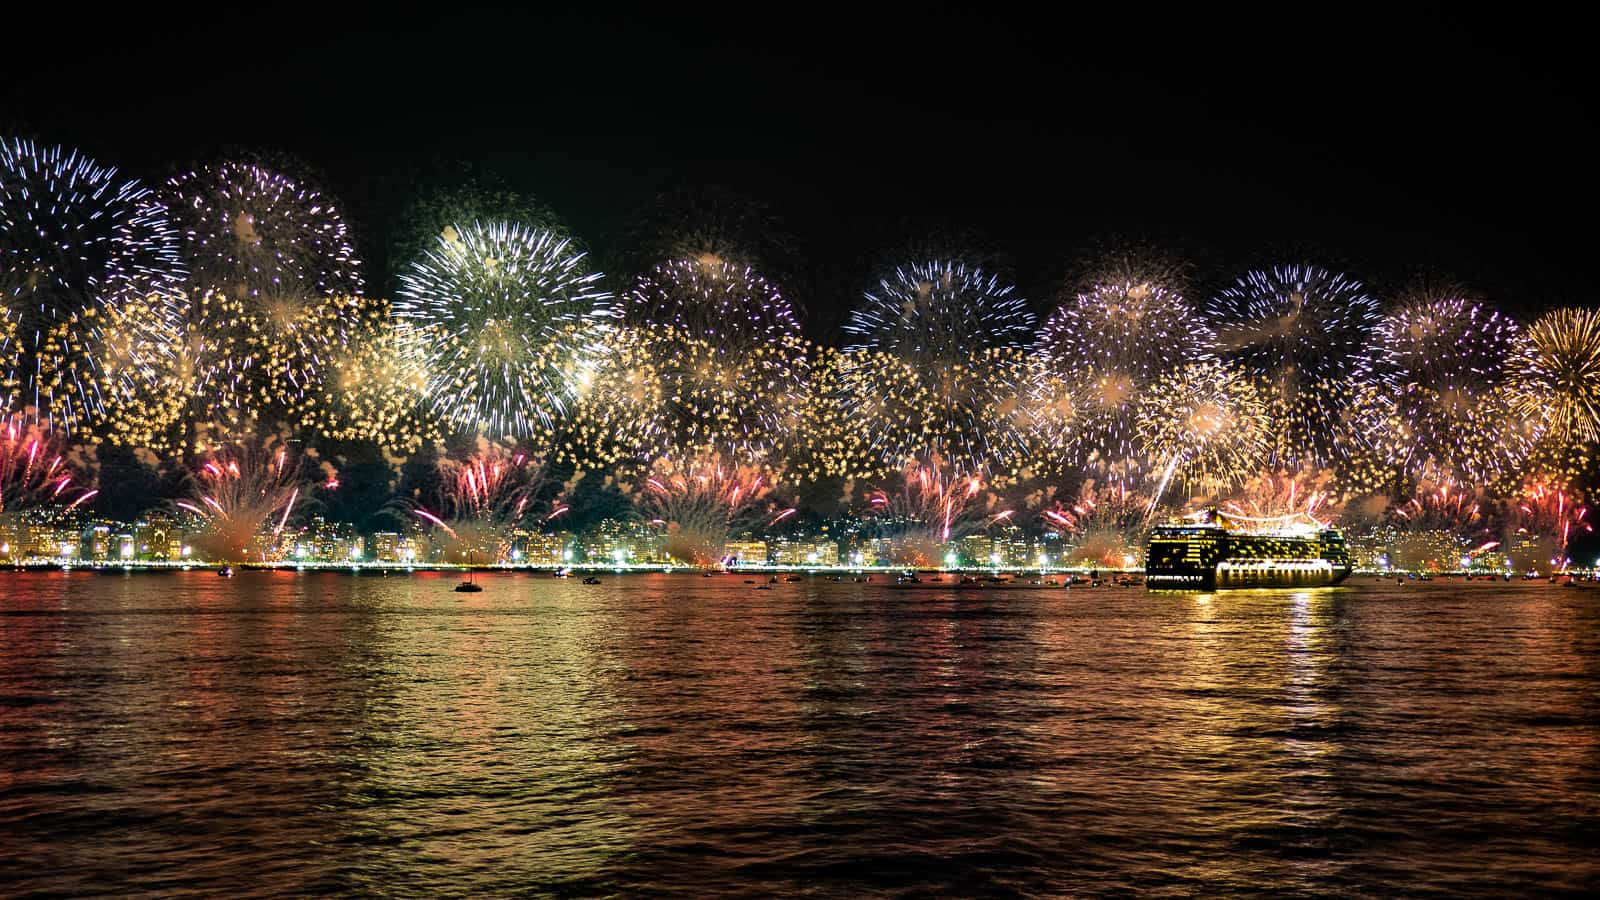 Fireworks on Copacabana Beach on New Years Eve in Rio de Janeiro Brazil